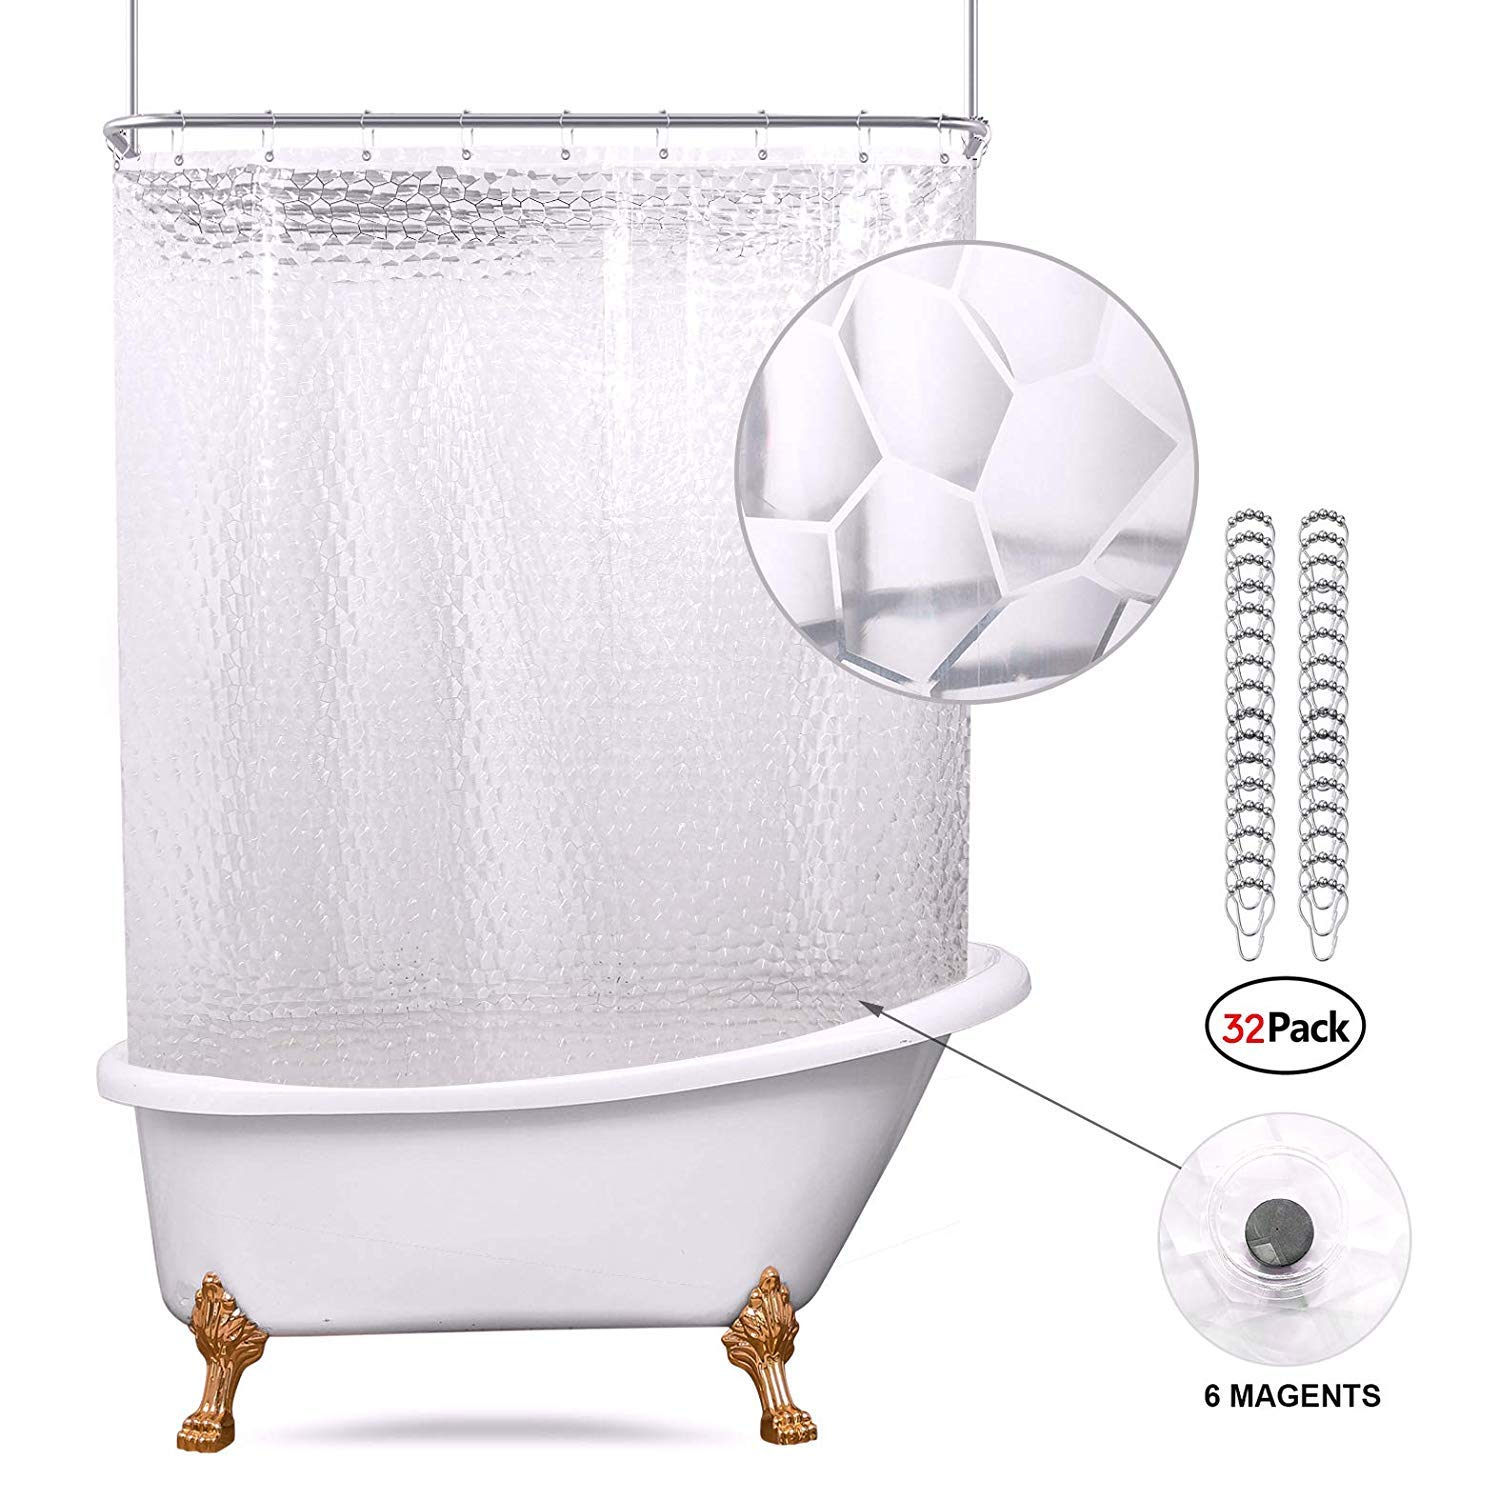 Riyidecor Clear Water Cube 180x70 Inch Shower Curtain Panel with Magnets Clawfoot Tub Bathroom Decor PEVA Vinyl Set All Wrap Around 32 Pack Metal Shower Hooks Extra Wide